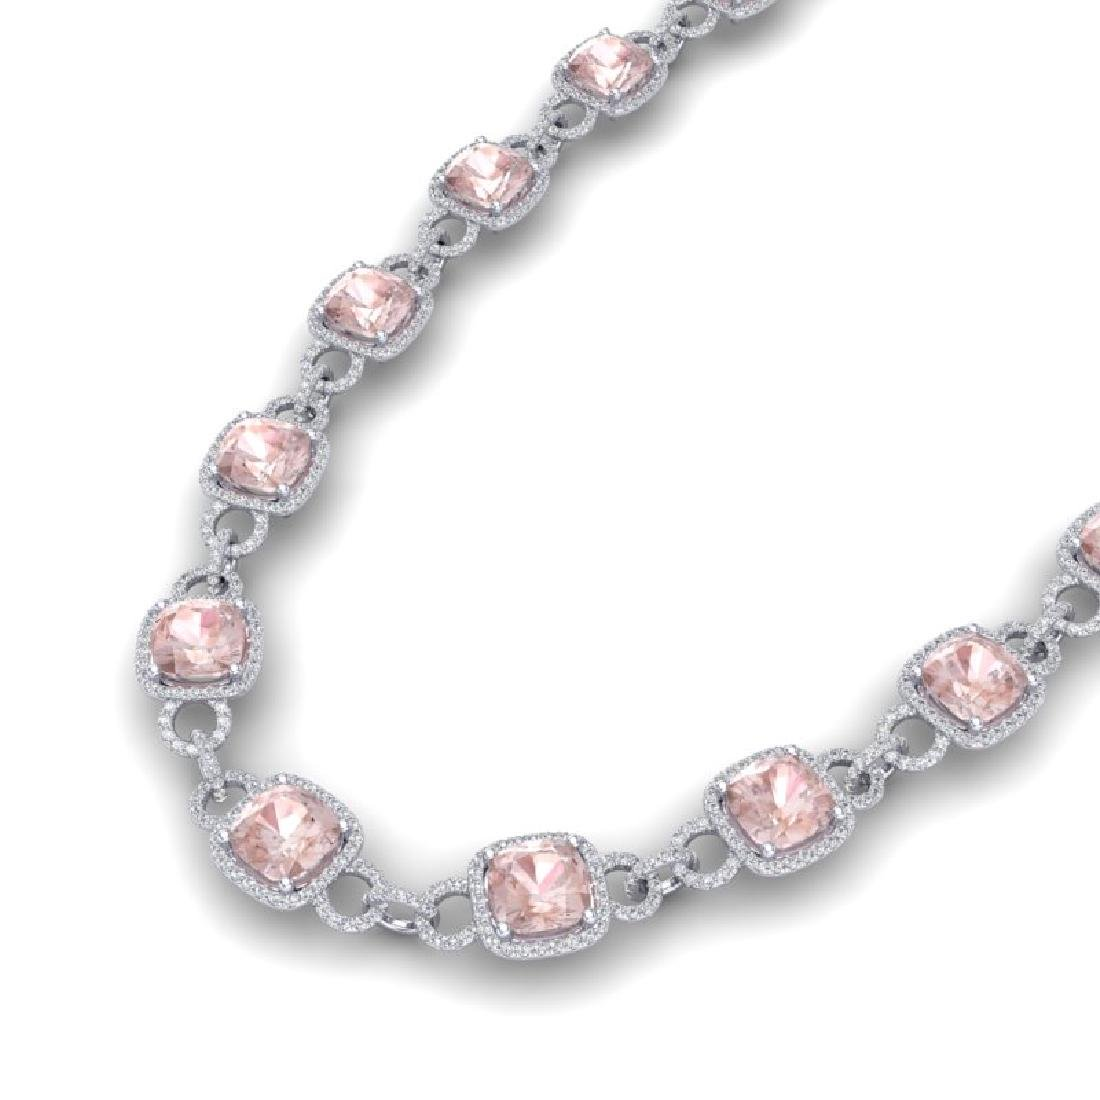 49 CTW Morganite & VS/SI Diamond Necklace 14K White